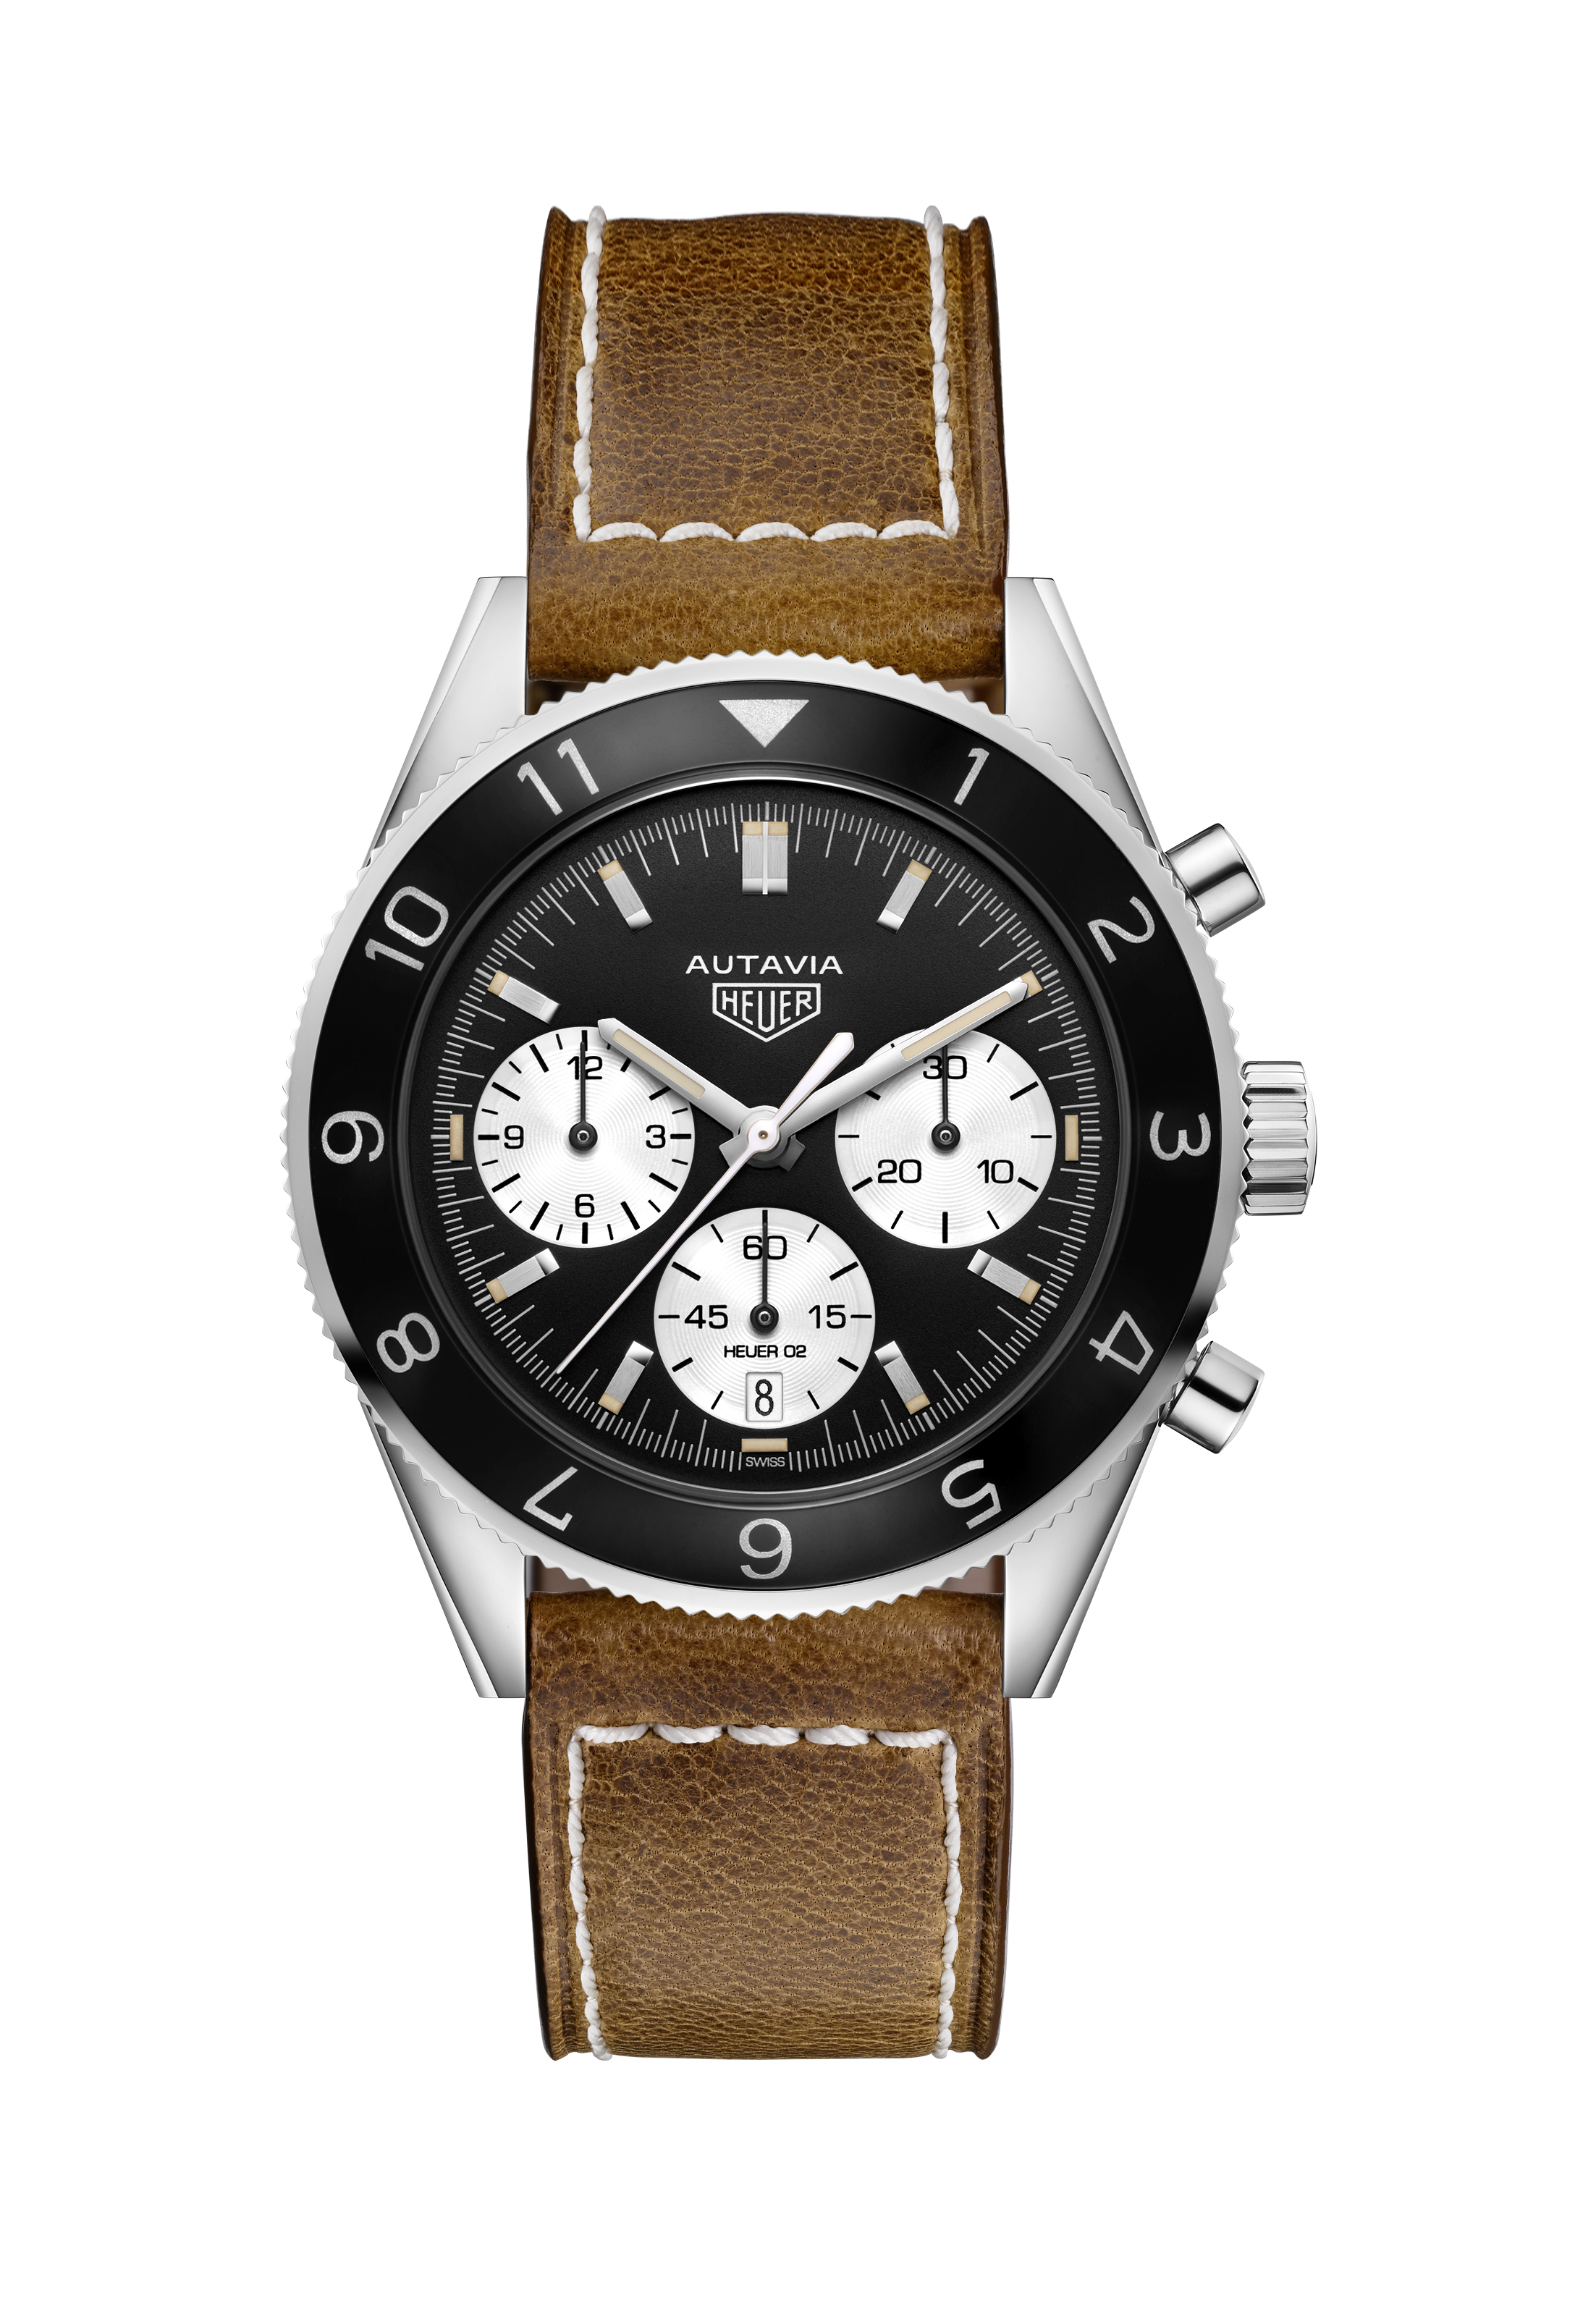 popular roamer armani best top switzerland selling for of emporio watches men most